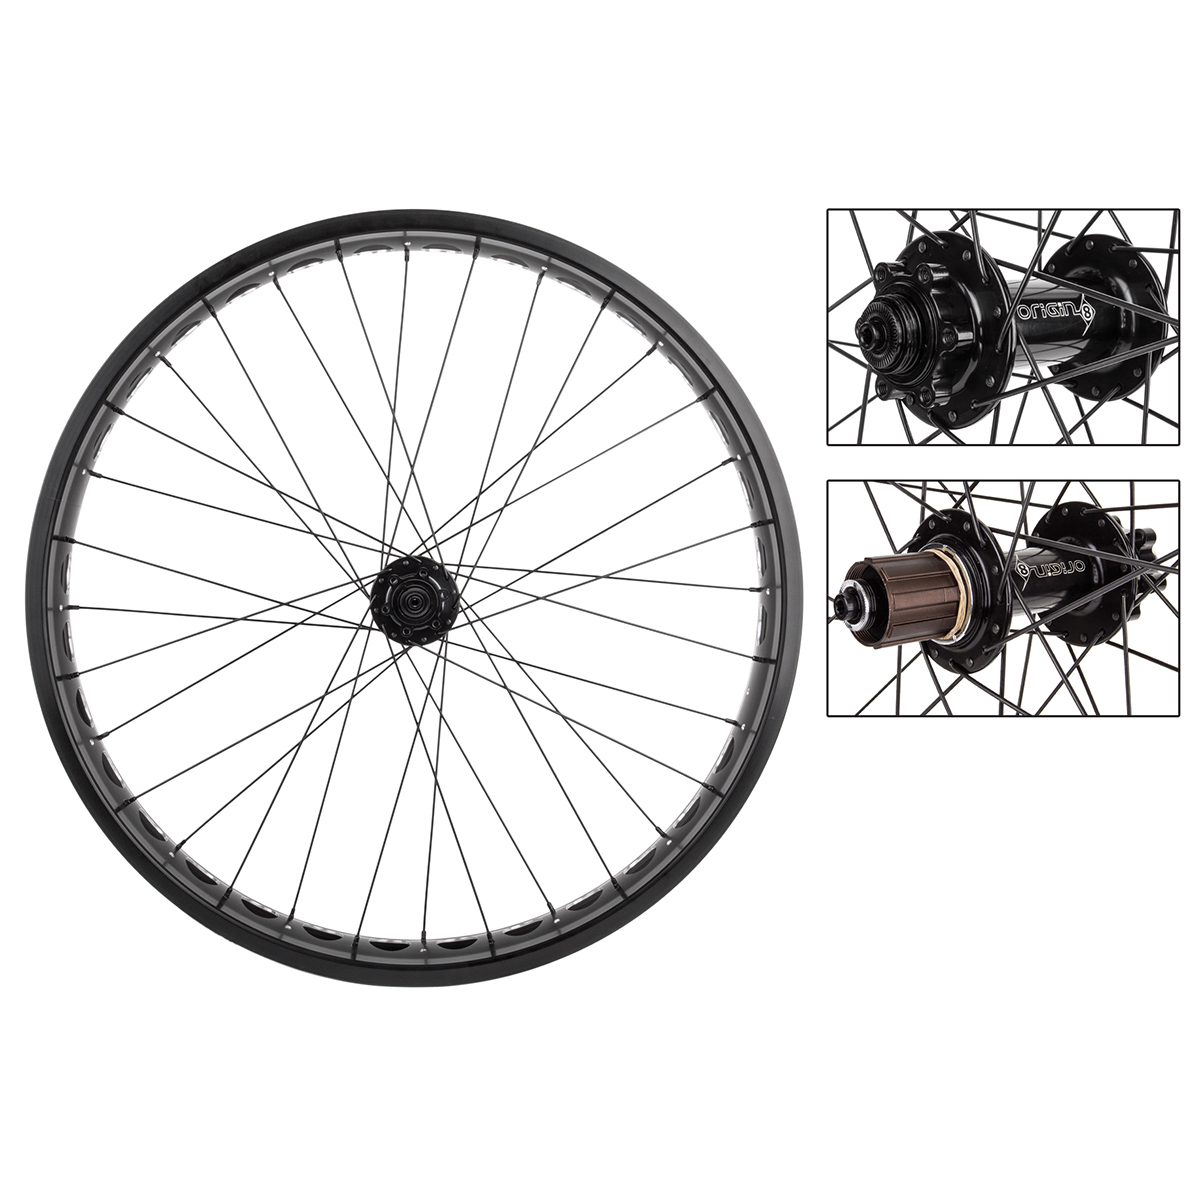 Origin8 AT-Pro801 Cruiser Wheelset 26x4 Black Shimano 11-Speed